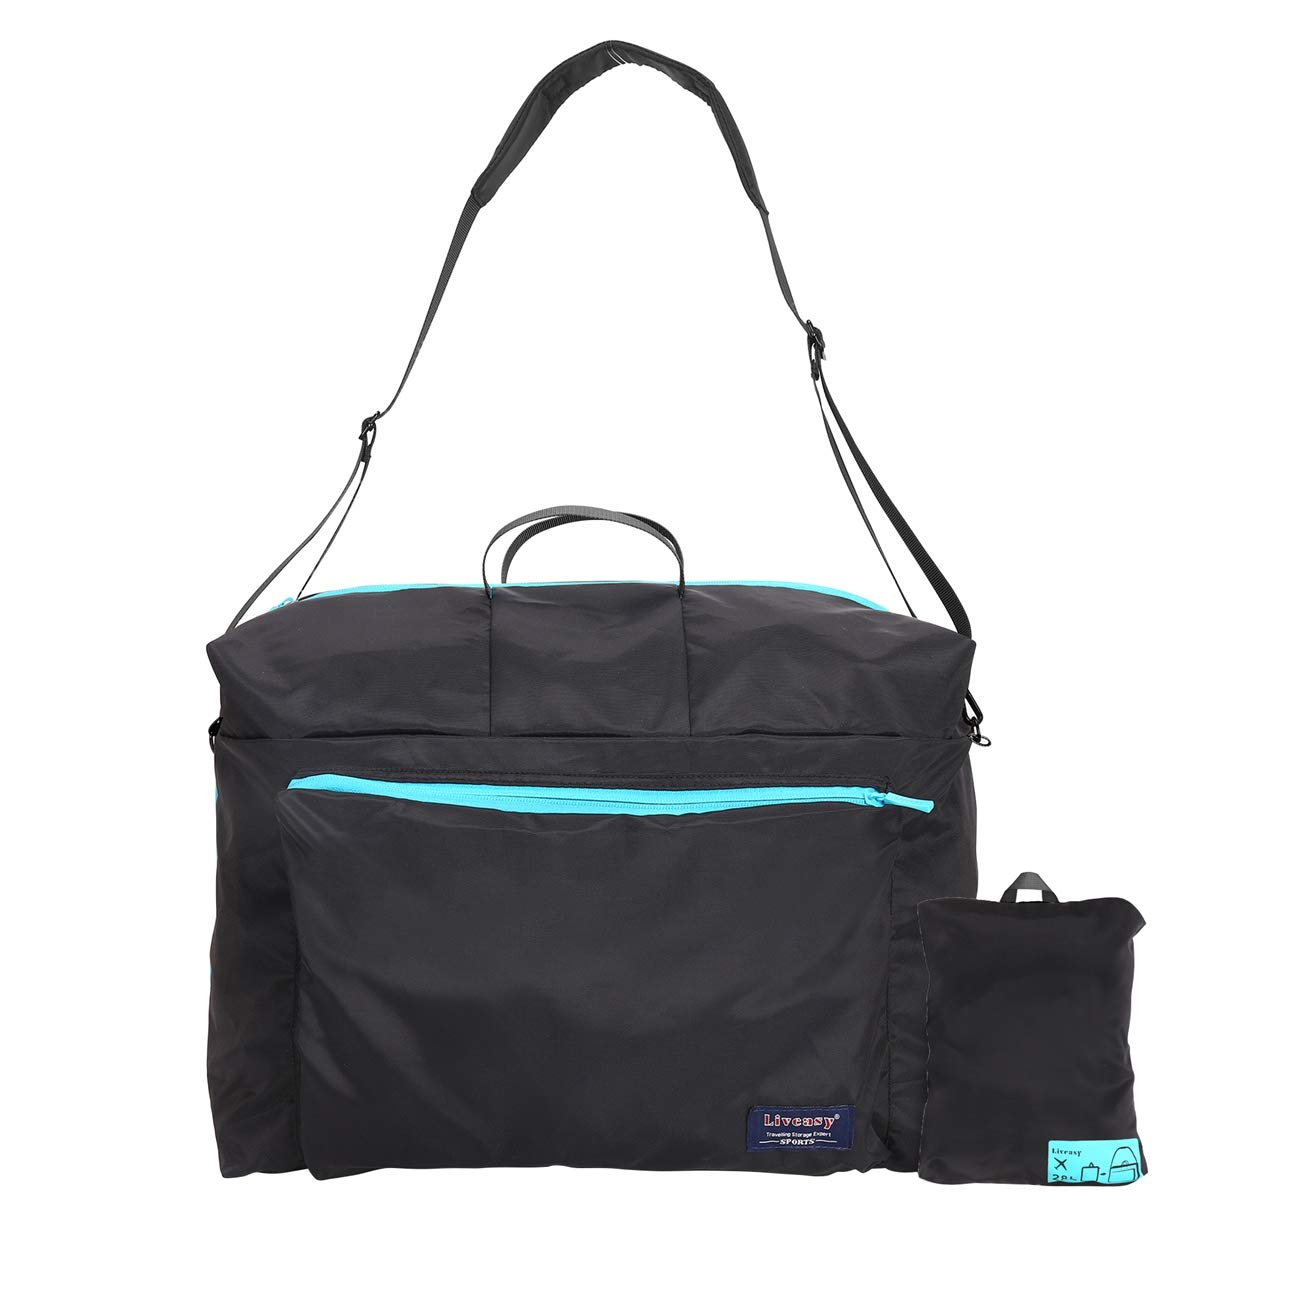 LIVEASY Weekend Bag Travel Duffel Bag Foldable Packable Bag for Luggage Waterproot and Lightweight Bag Gym Bag